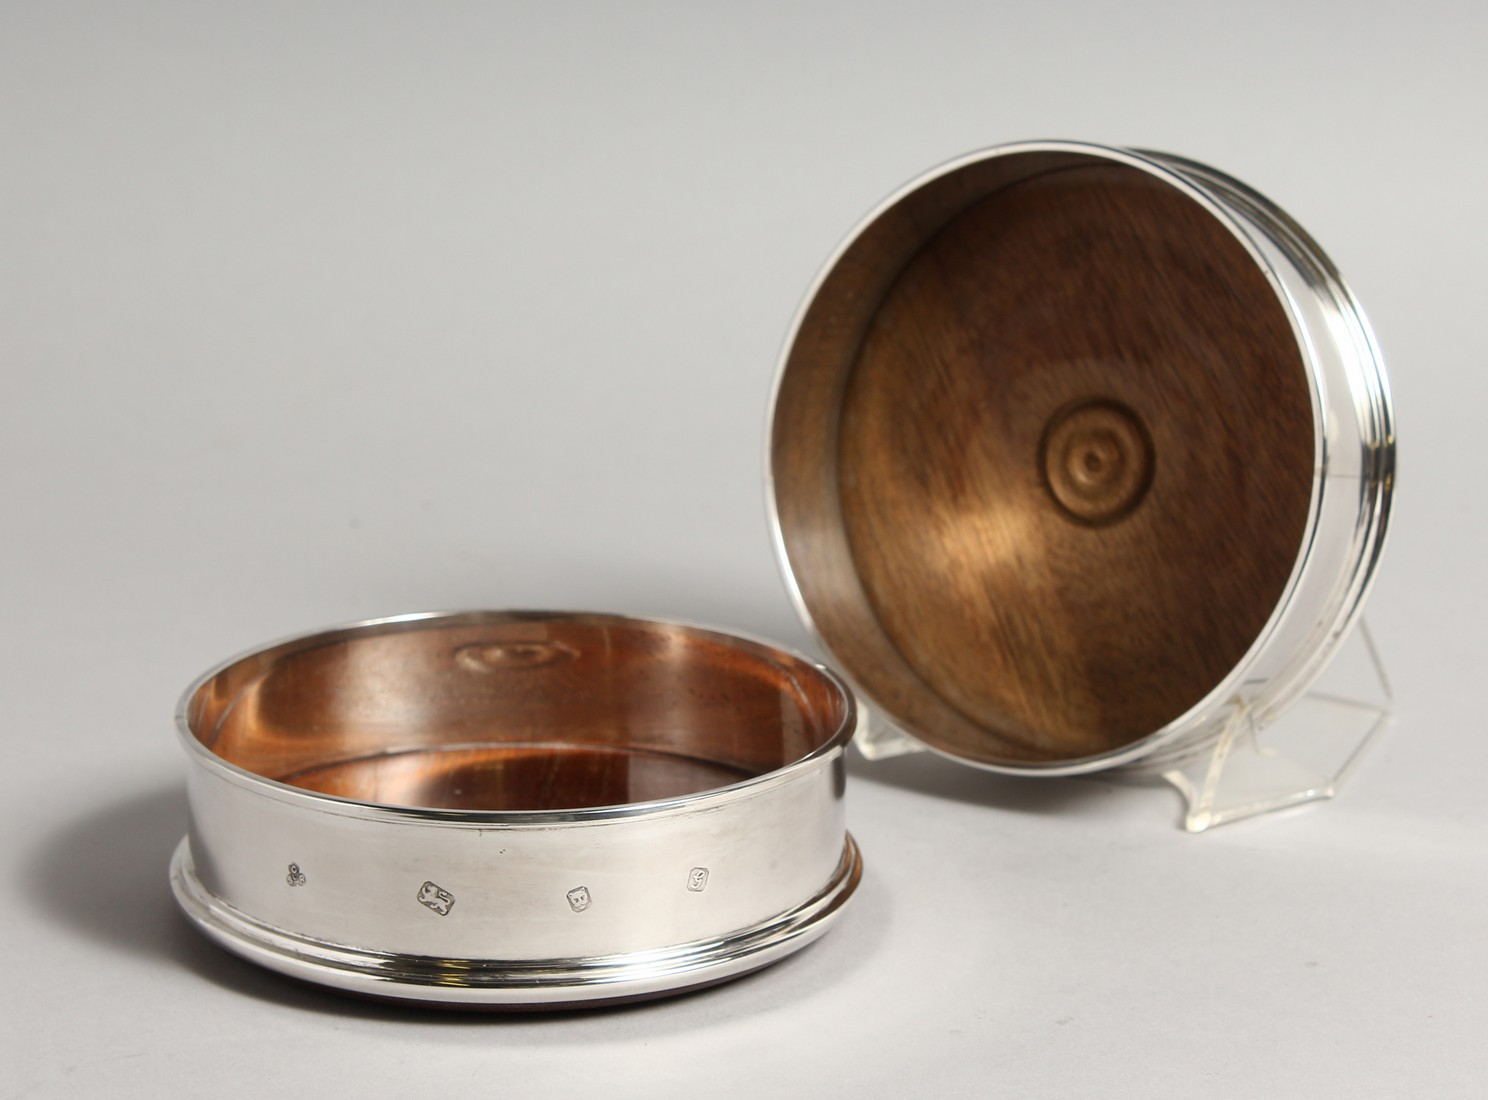 A PAIR OF MODERN PLAIN SILVER WINE WINE COASTERS wit turned wood bases 4.75diameter London 2003